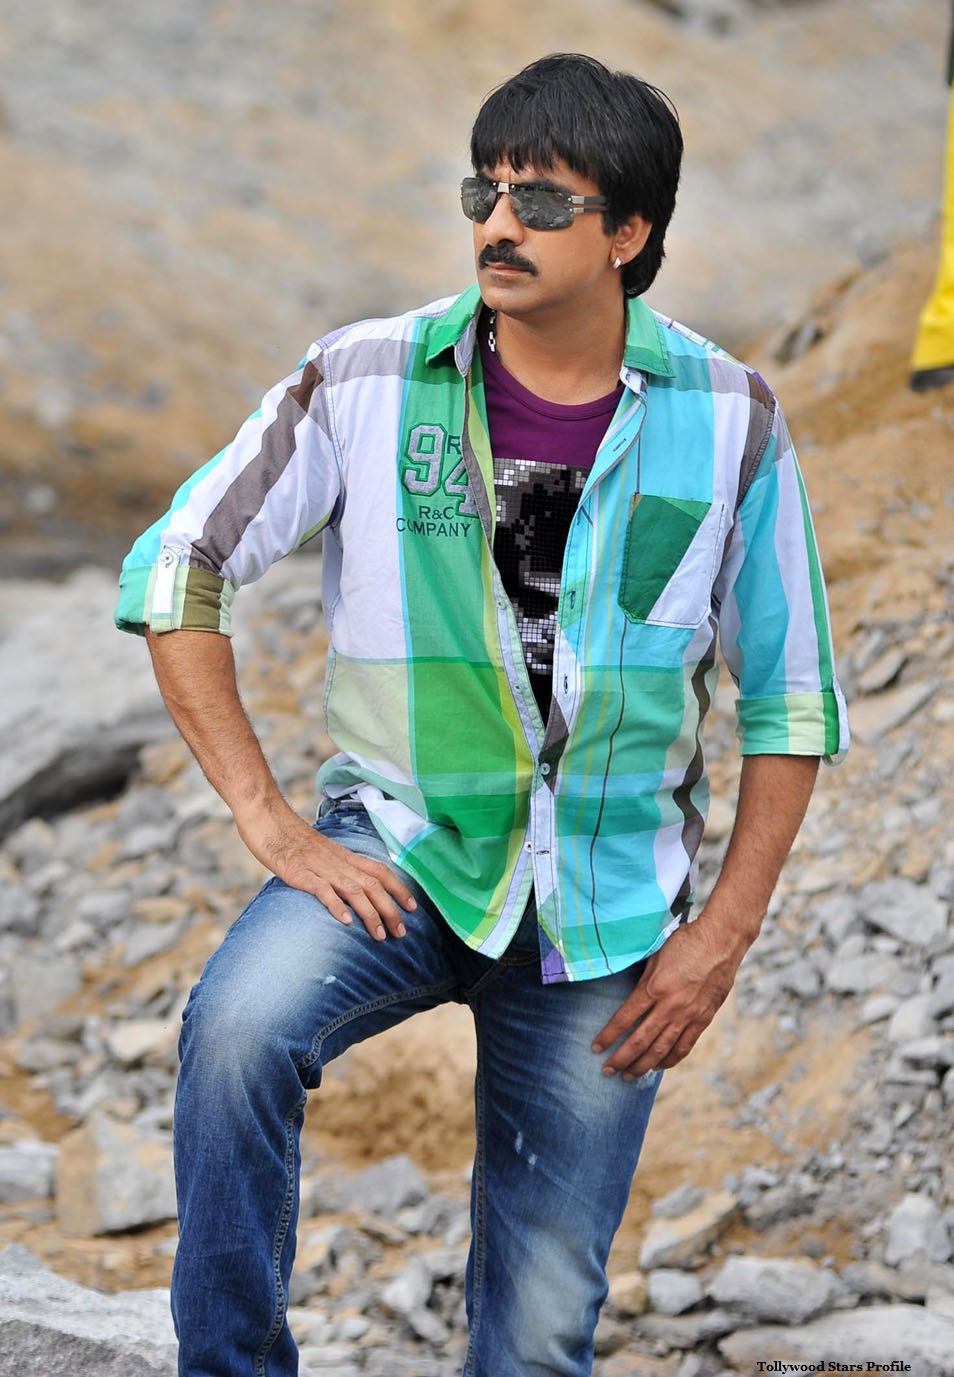 RAVI teja Latest Stills From Nippu Movie | RAVI Teja New Photos From ...